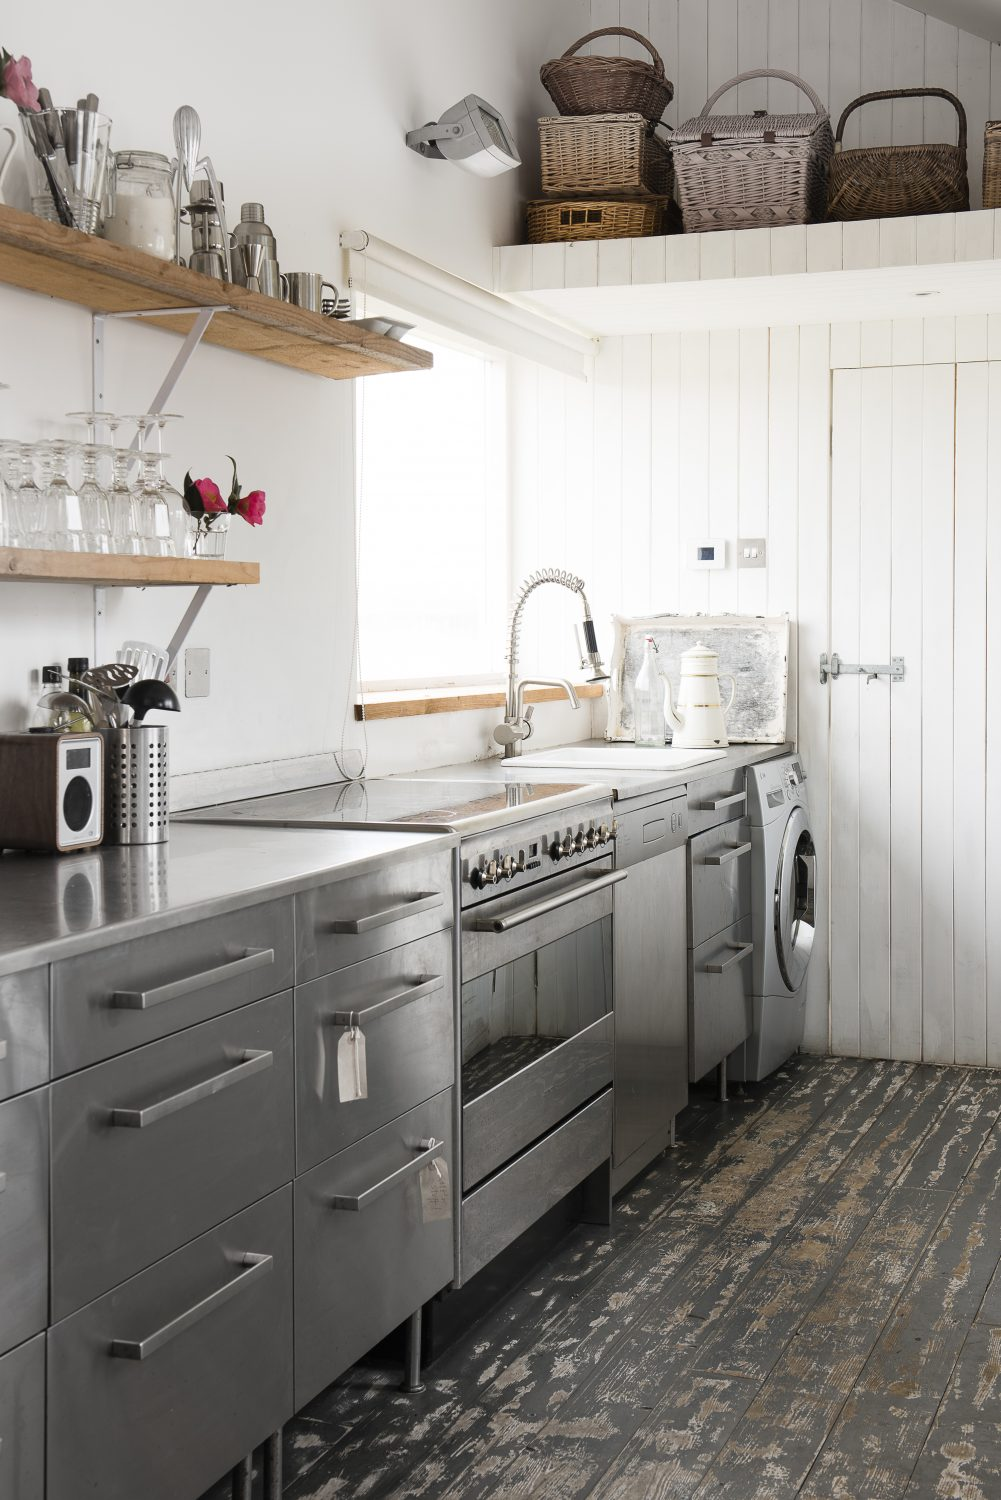 the kitchen has an industrial feel with stainless steel appliances. The drawer unit is from IKEA